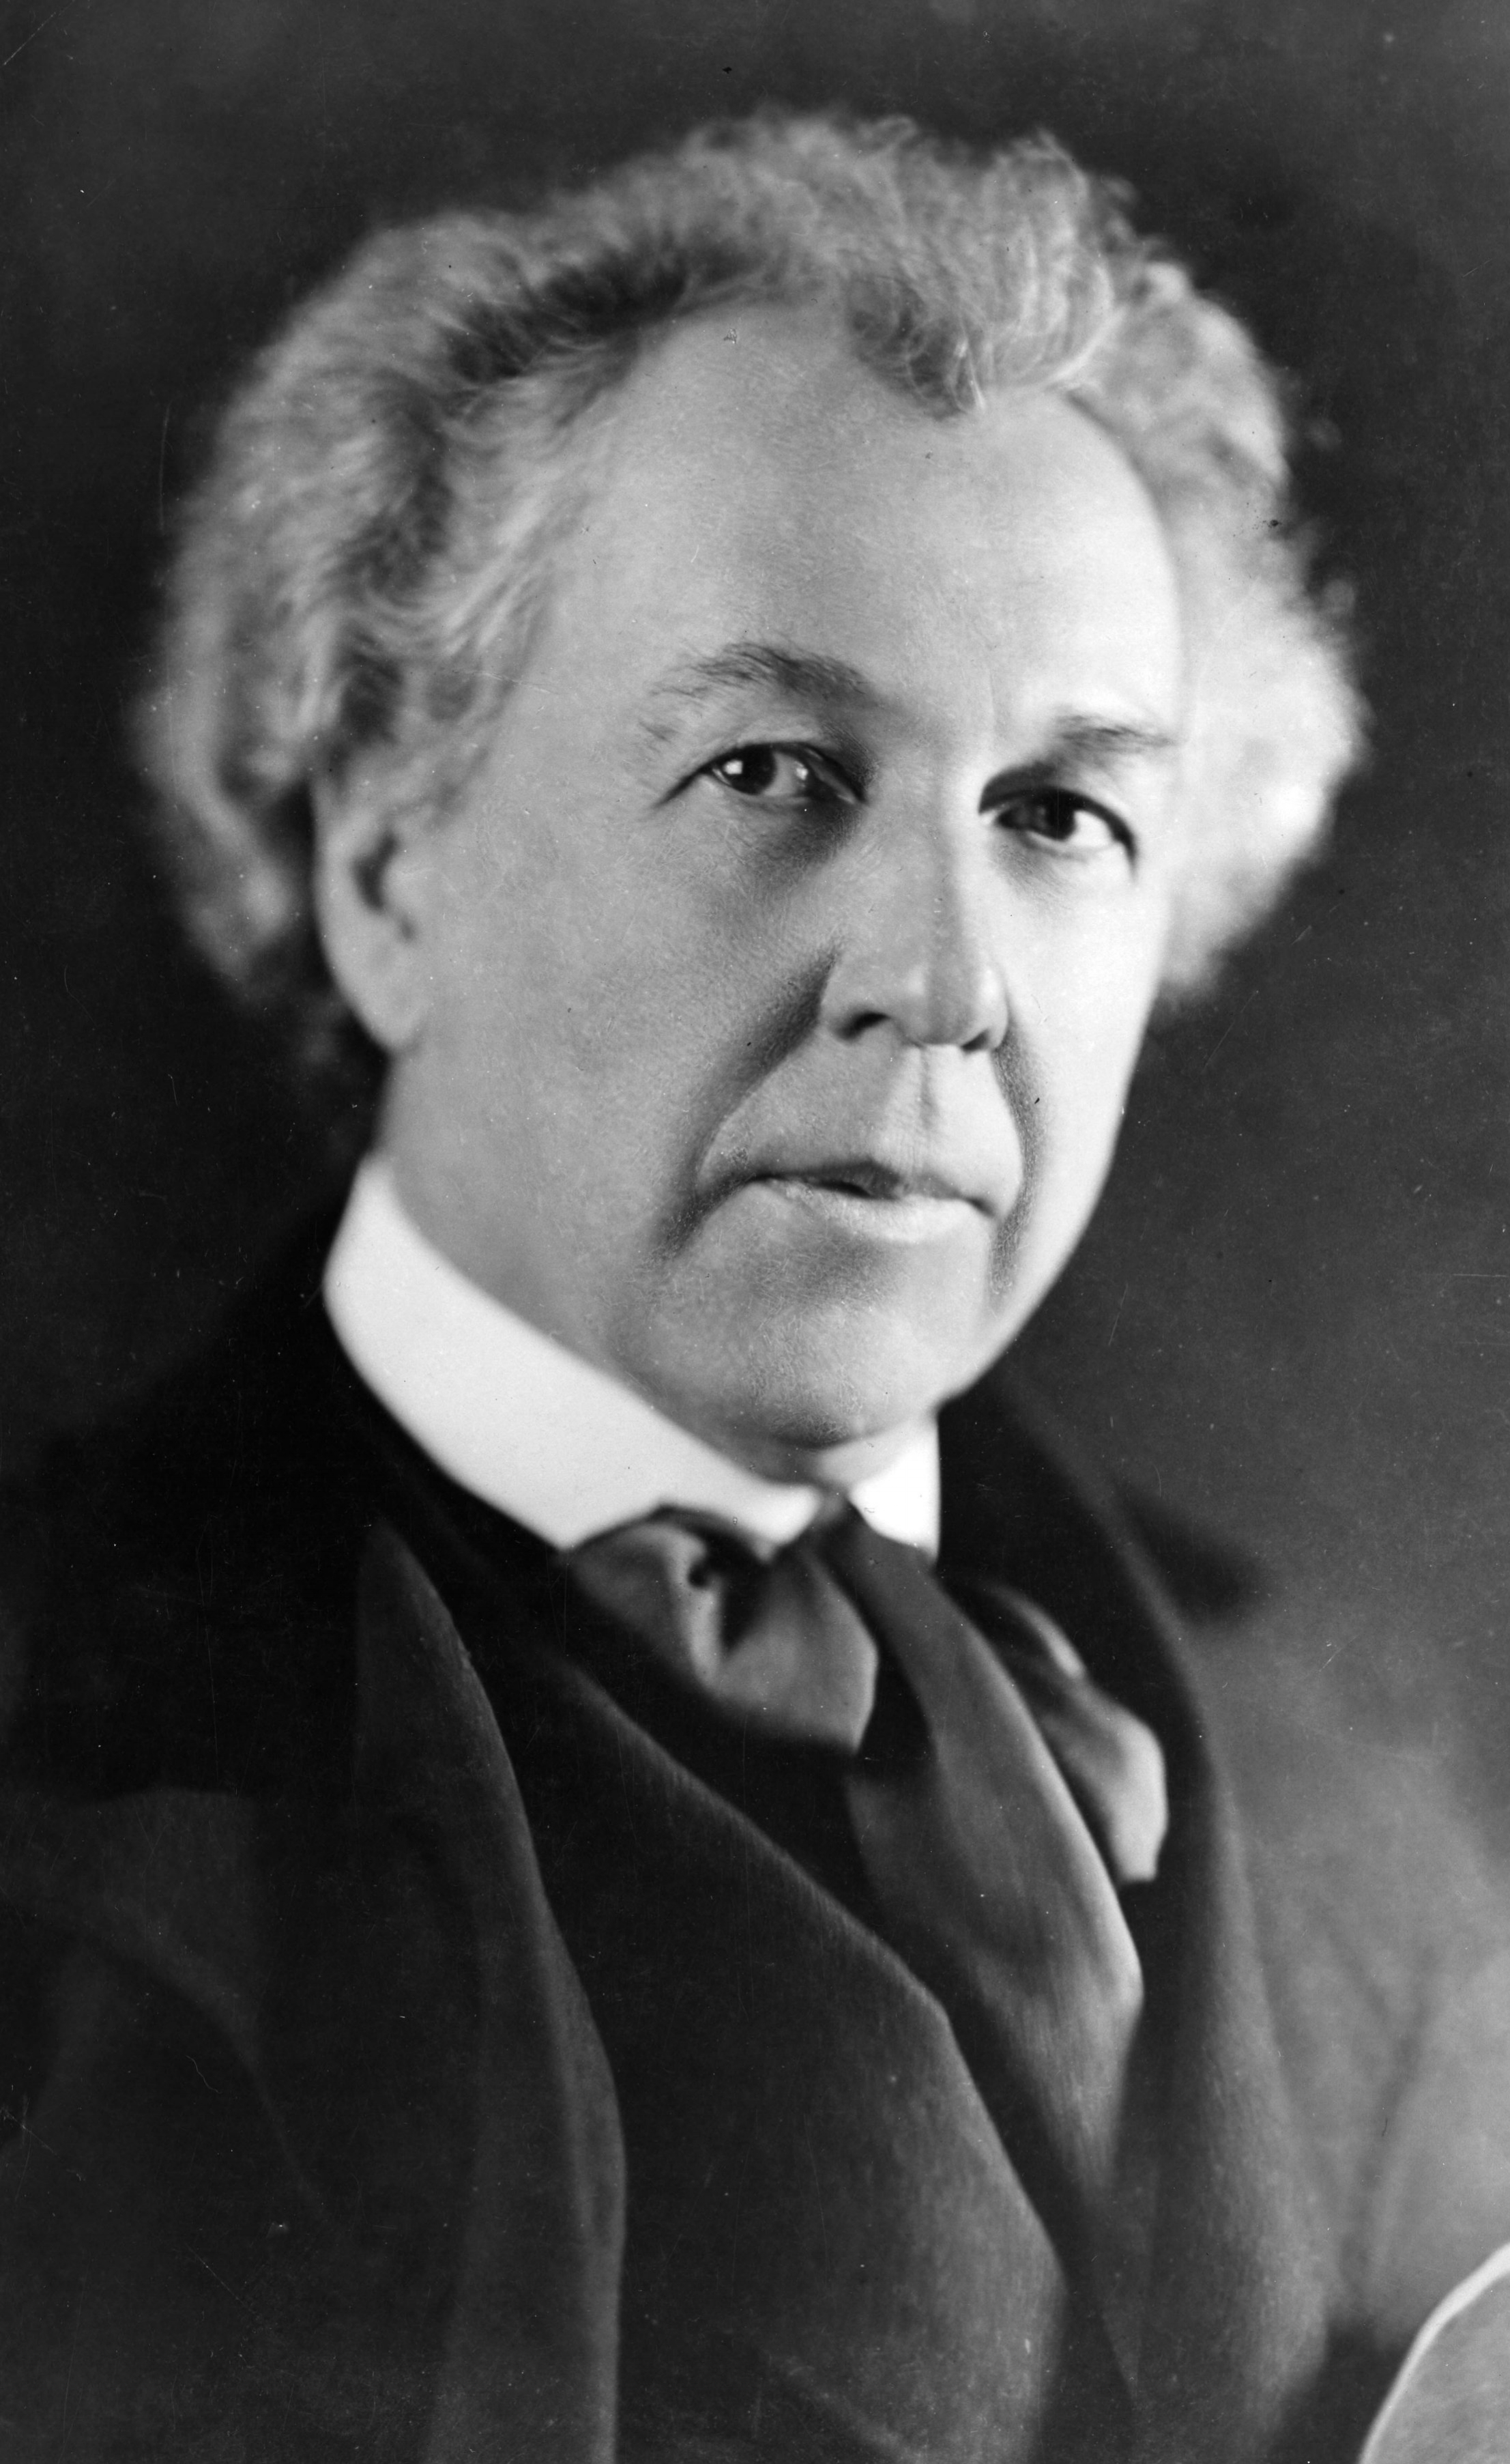 Frank Lloyd Wright, March 1, 1926.  [Public domain. Courtesy of Library of Congress.]